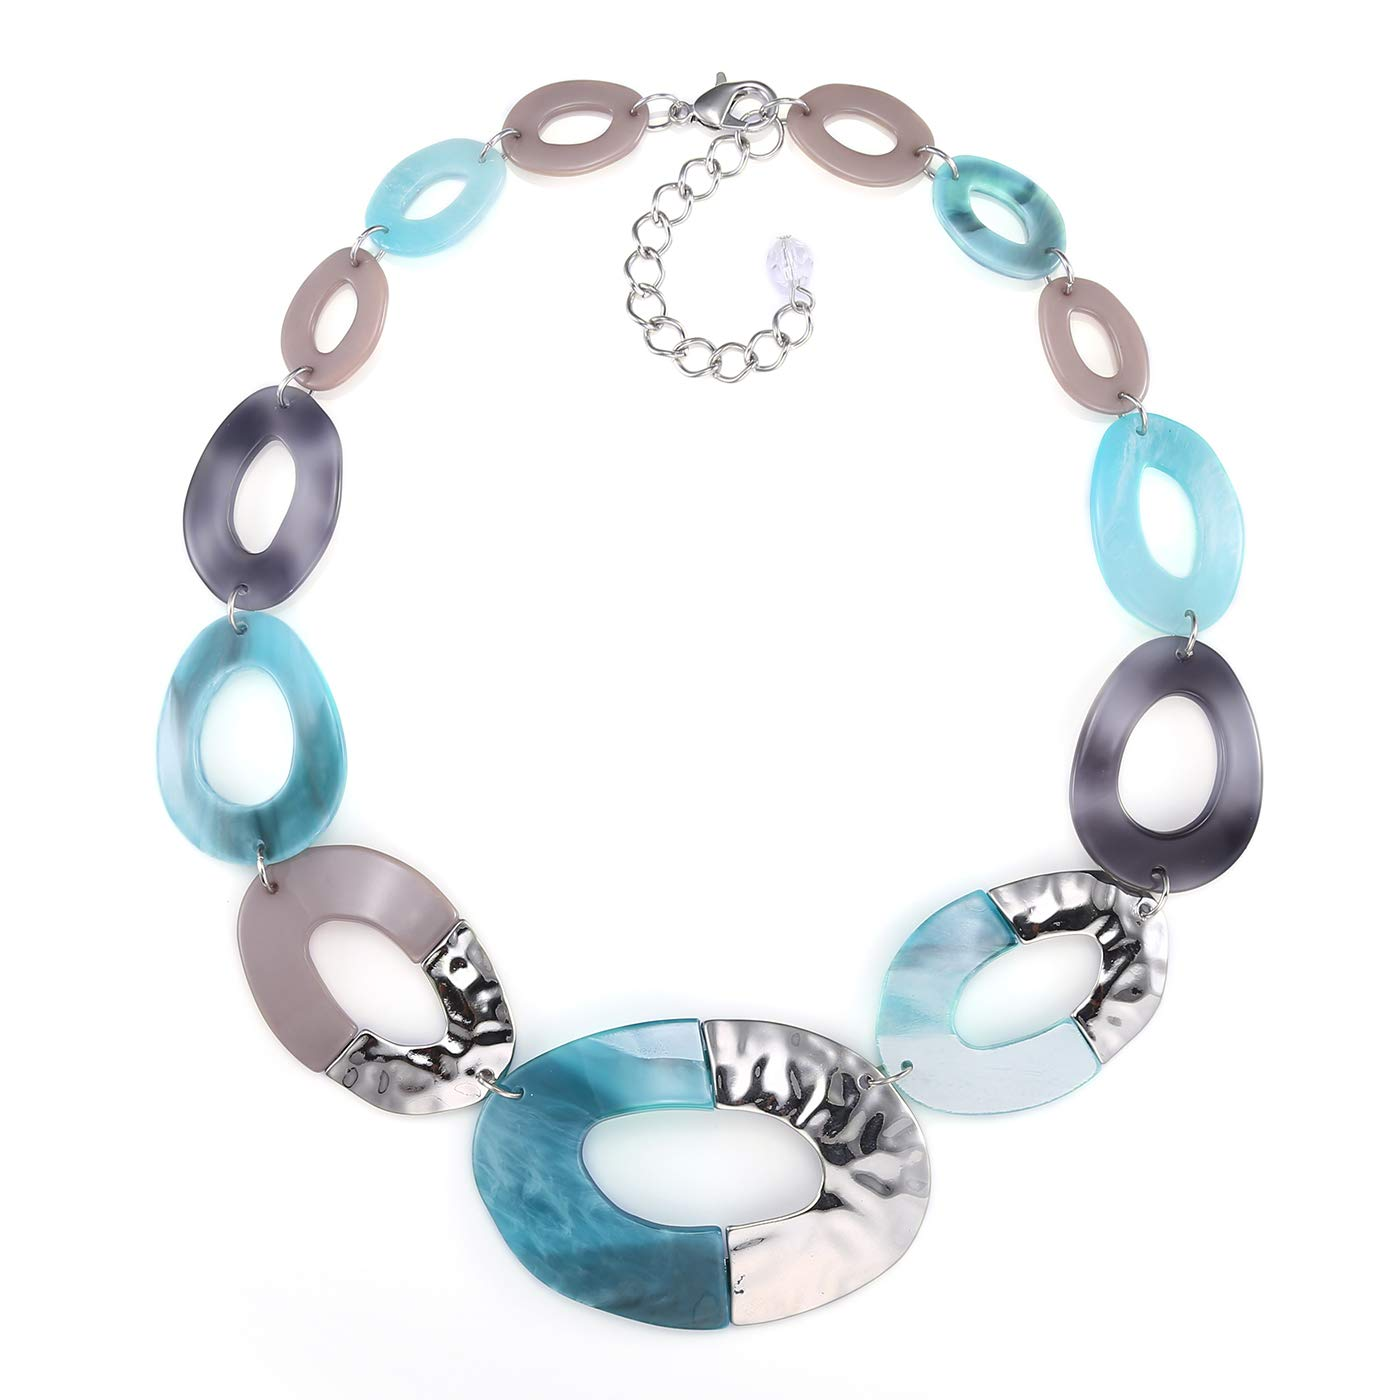 FAMARINE Statement Collar Necklace, Aqua Bohemia Chunky Resin Metal Chain Necklace for Women Jewelry by FAMARINE